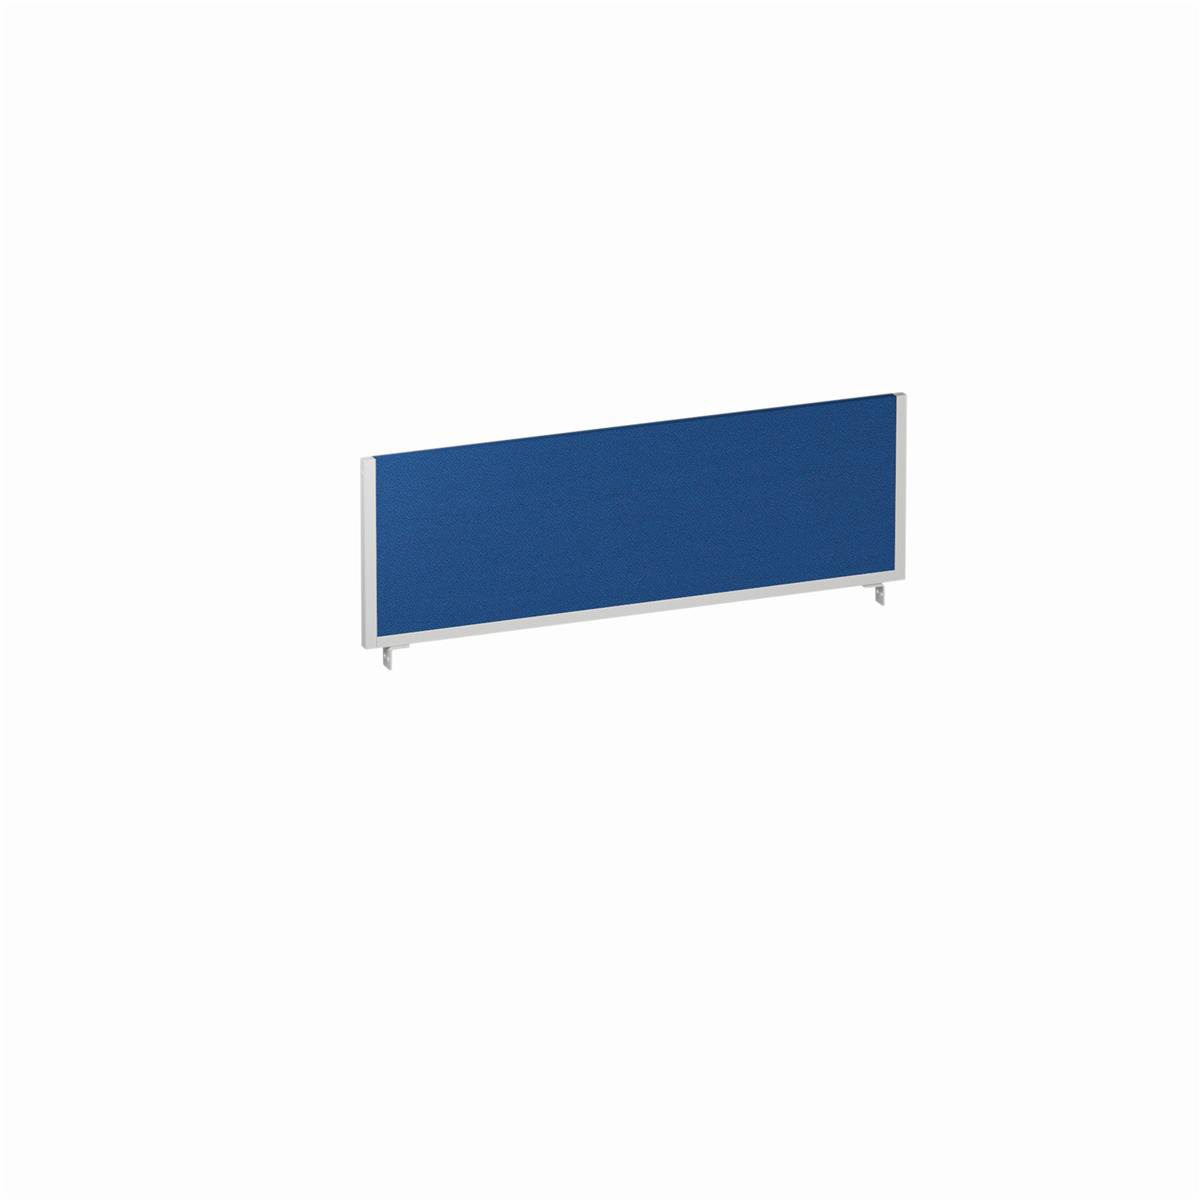 Trexus Desk Screen 1200mm Blue with Silver Frame